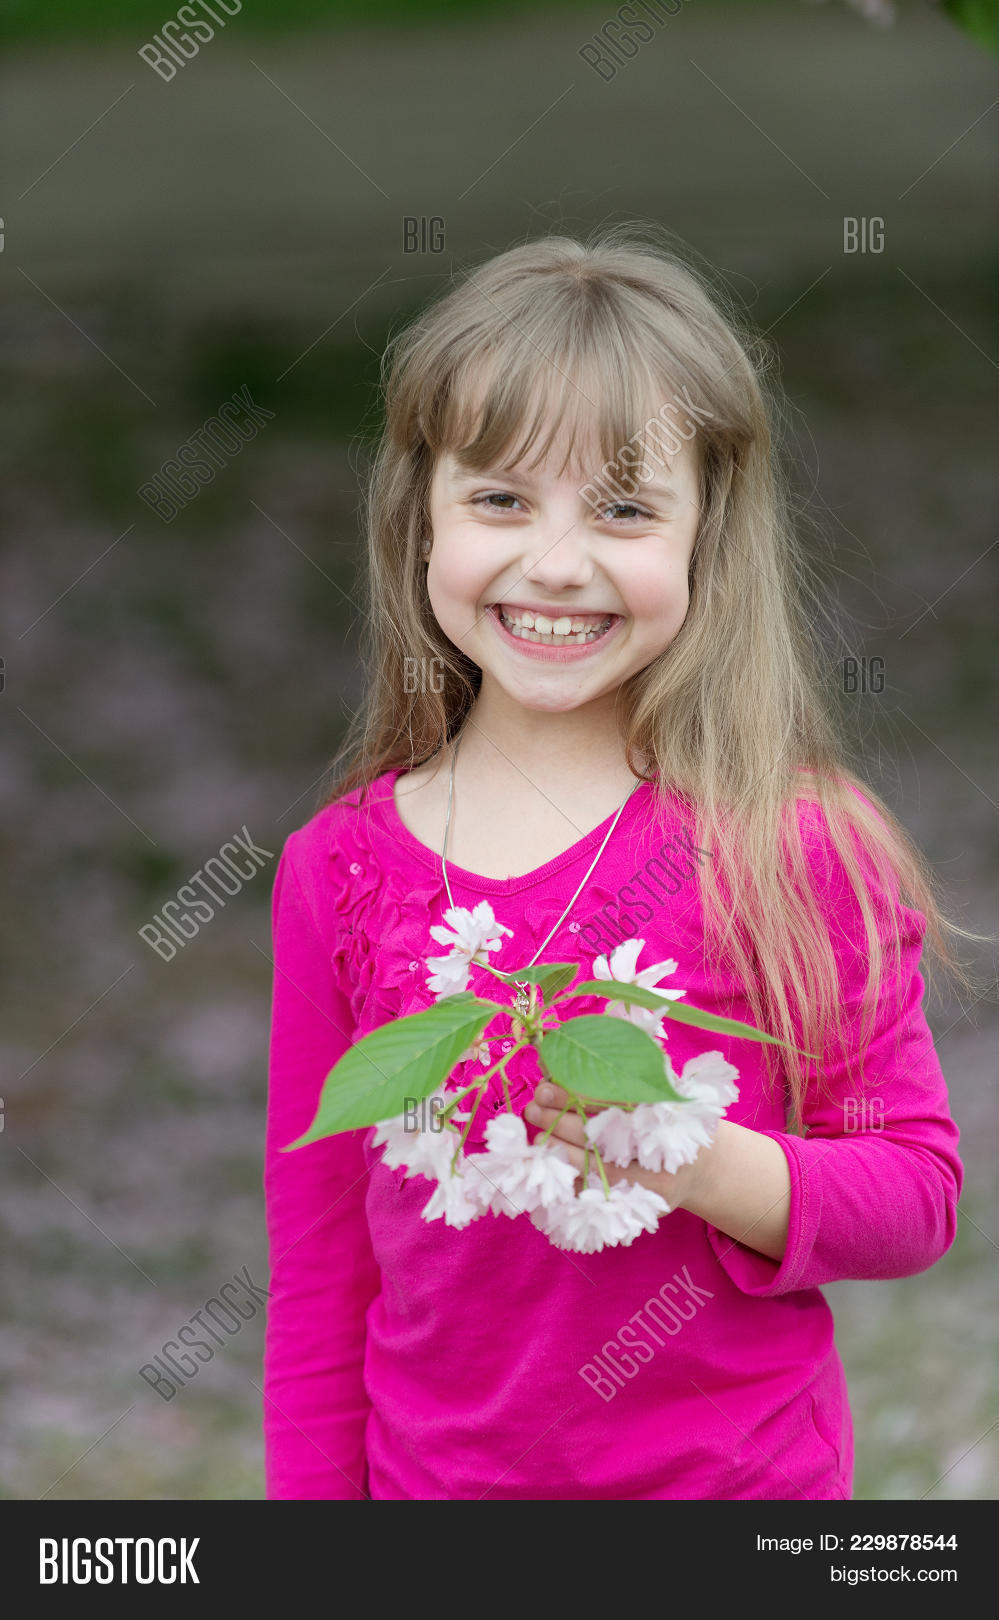 small baby girl cute image & photo (free trial) | bigstock